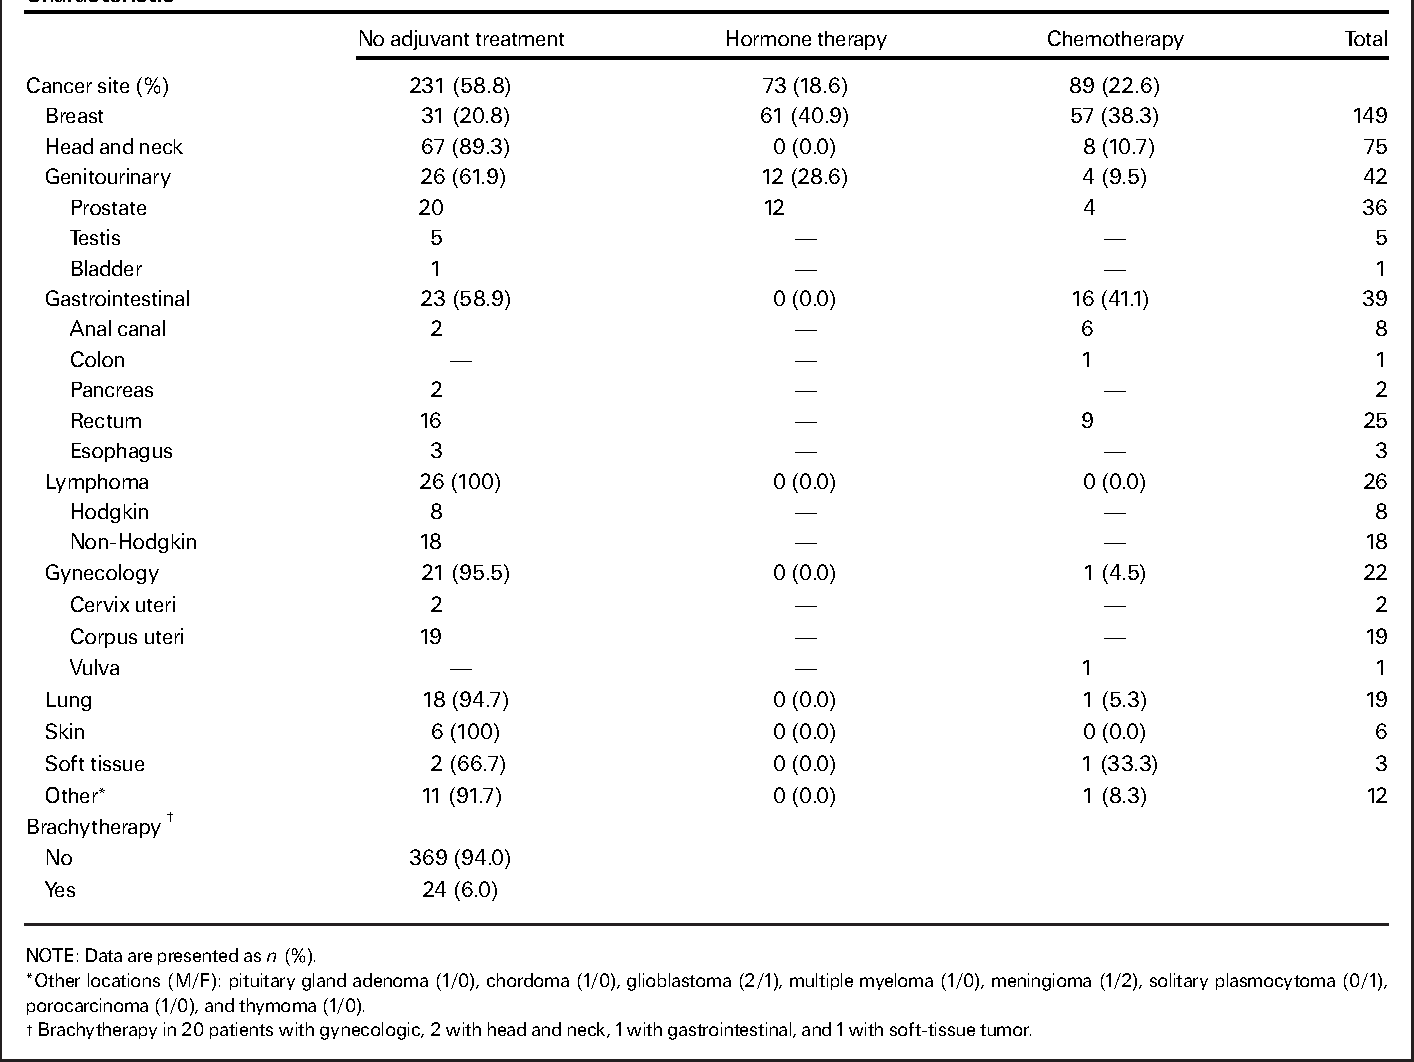 Fig. 1A). The relapse component of the composite relapse-free survival and complication-free survival rates was similarly distributed between the three categories of CD8 with estimated cumulative relapse incidences of 17%, 24%, and 22%, respectively (Table 5; Fig. 1B).